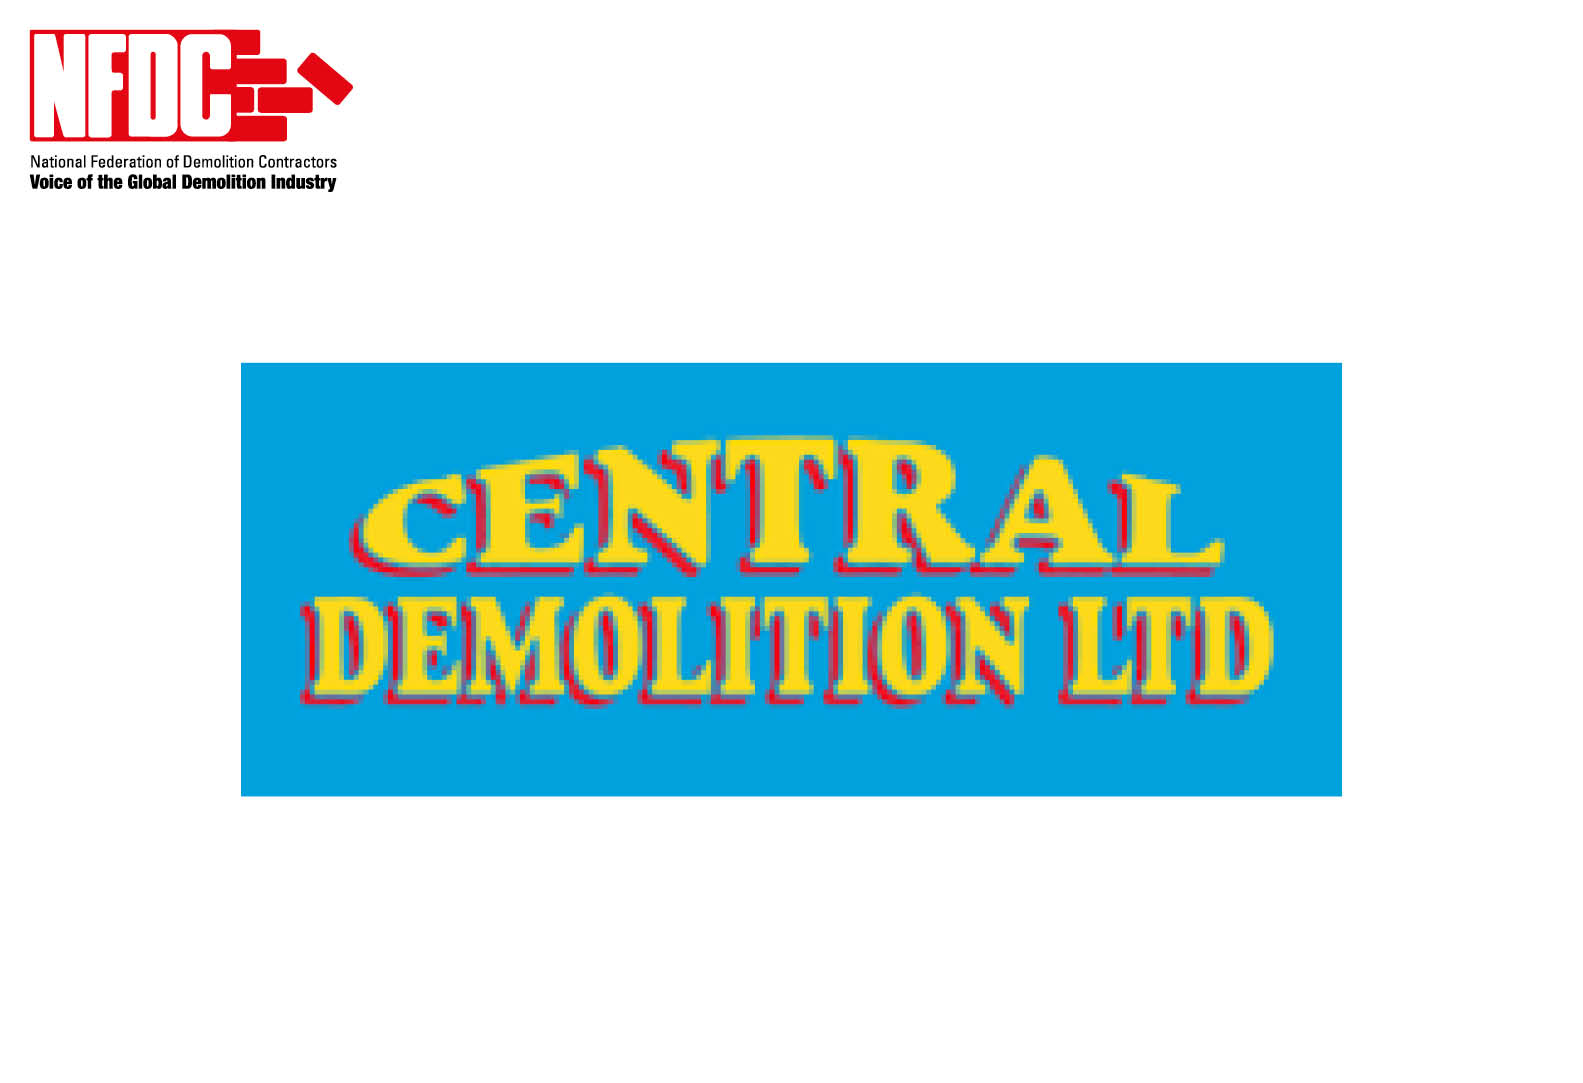 Cental Demolition